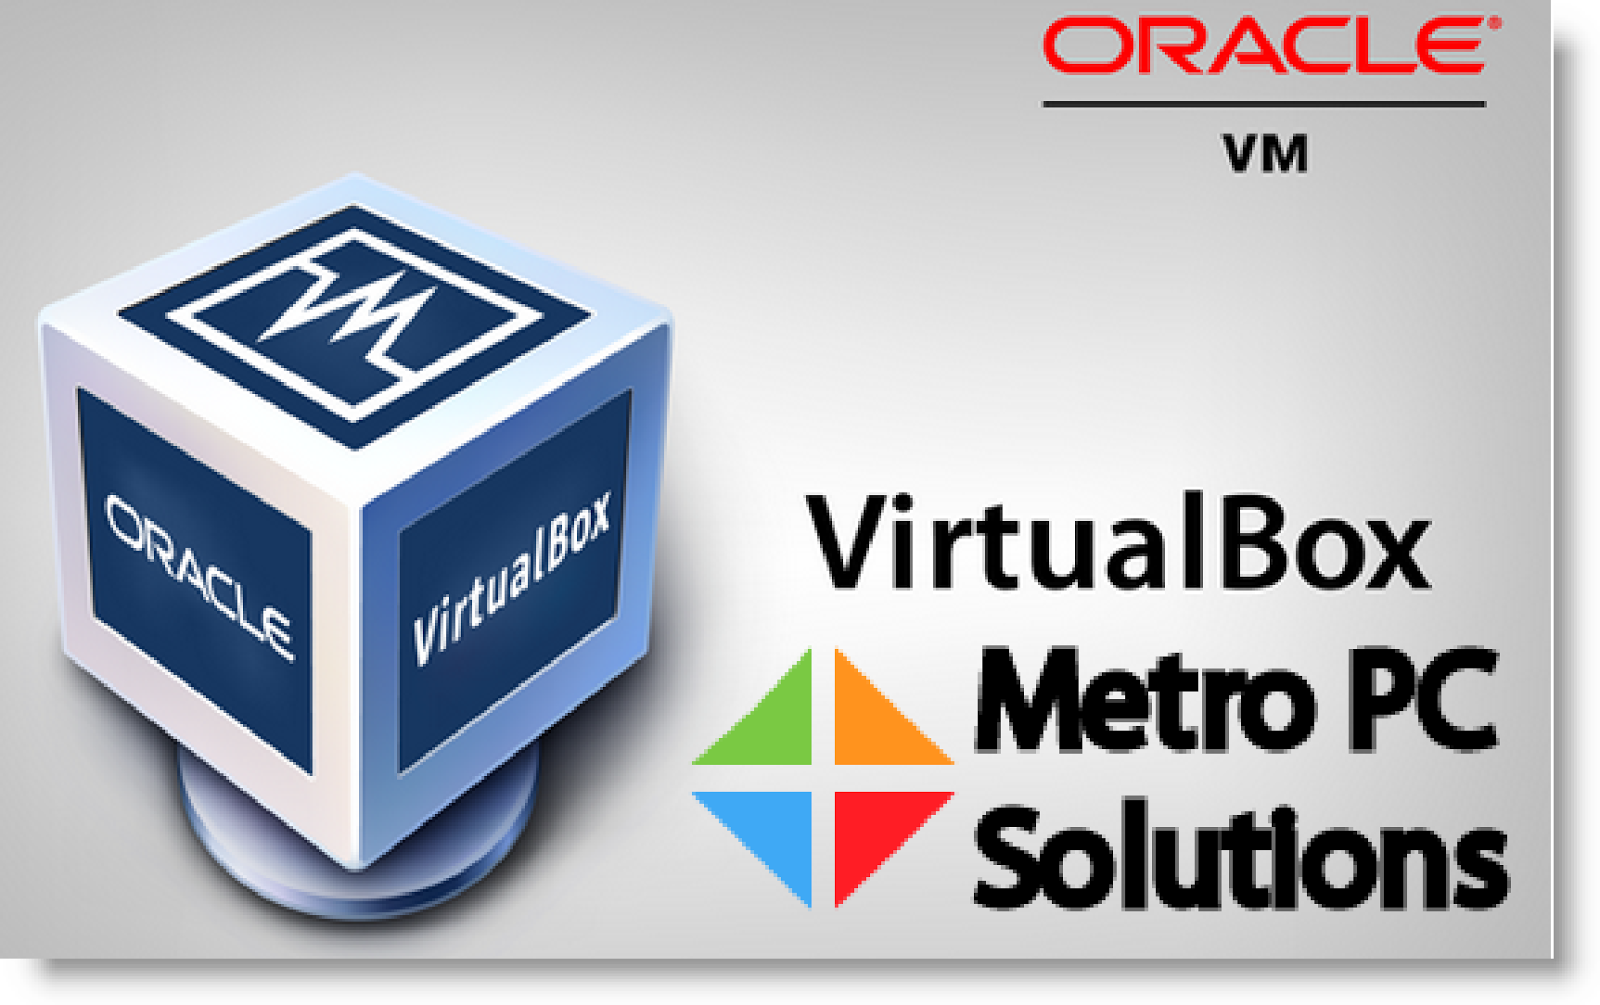 oracle virtualbox 4.3.28